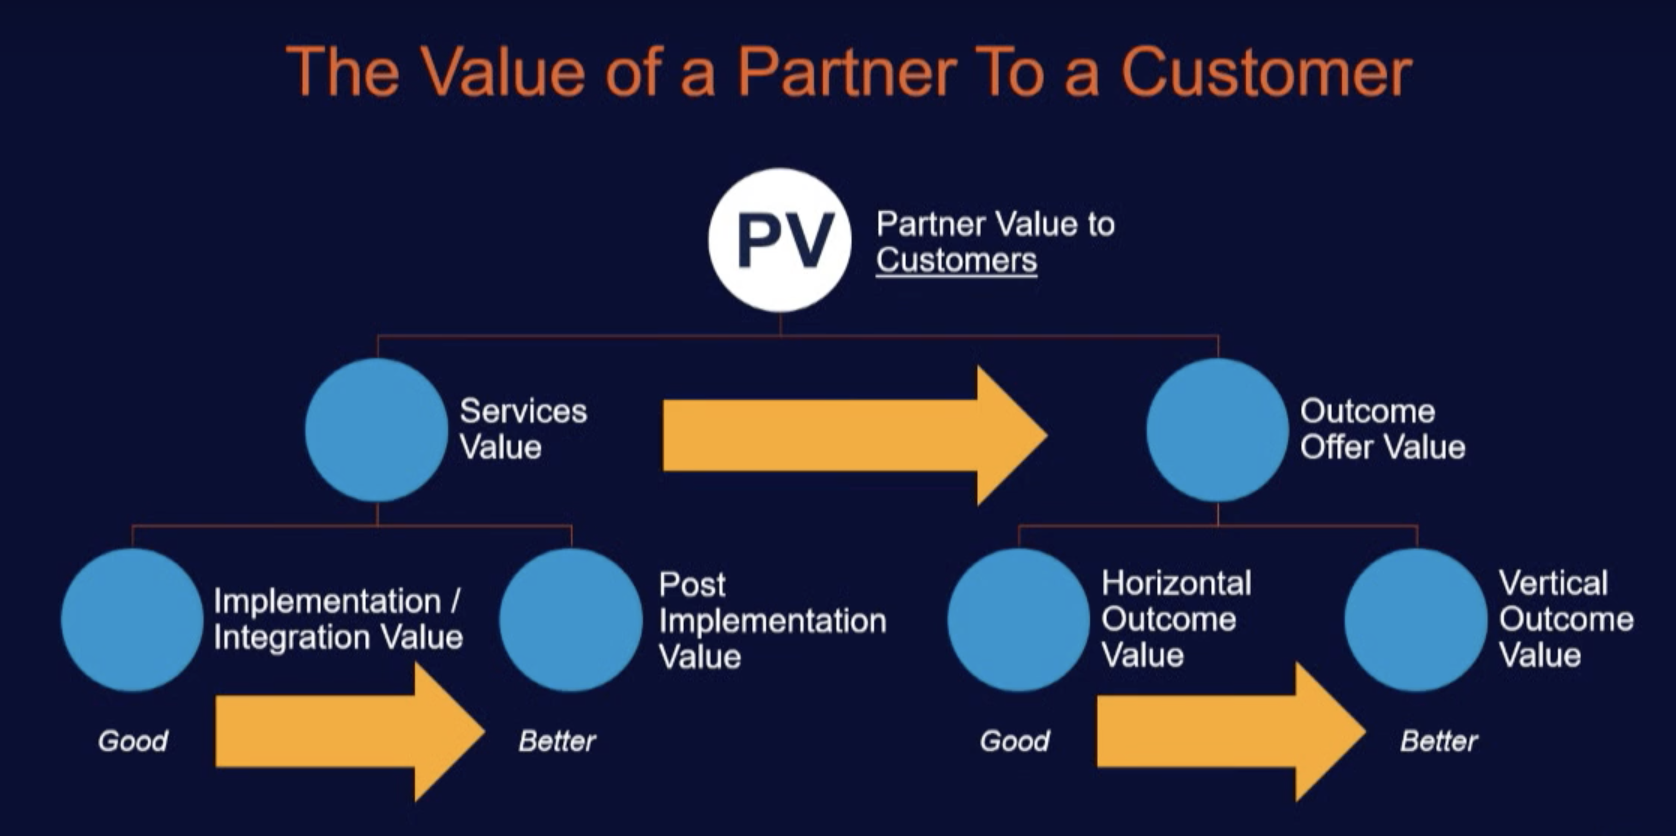 The Value of a Partner to a Customer